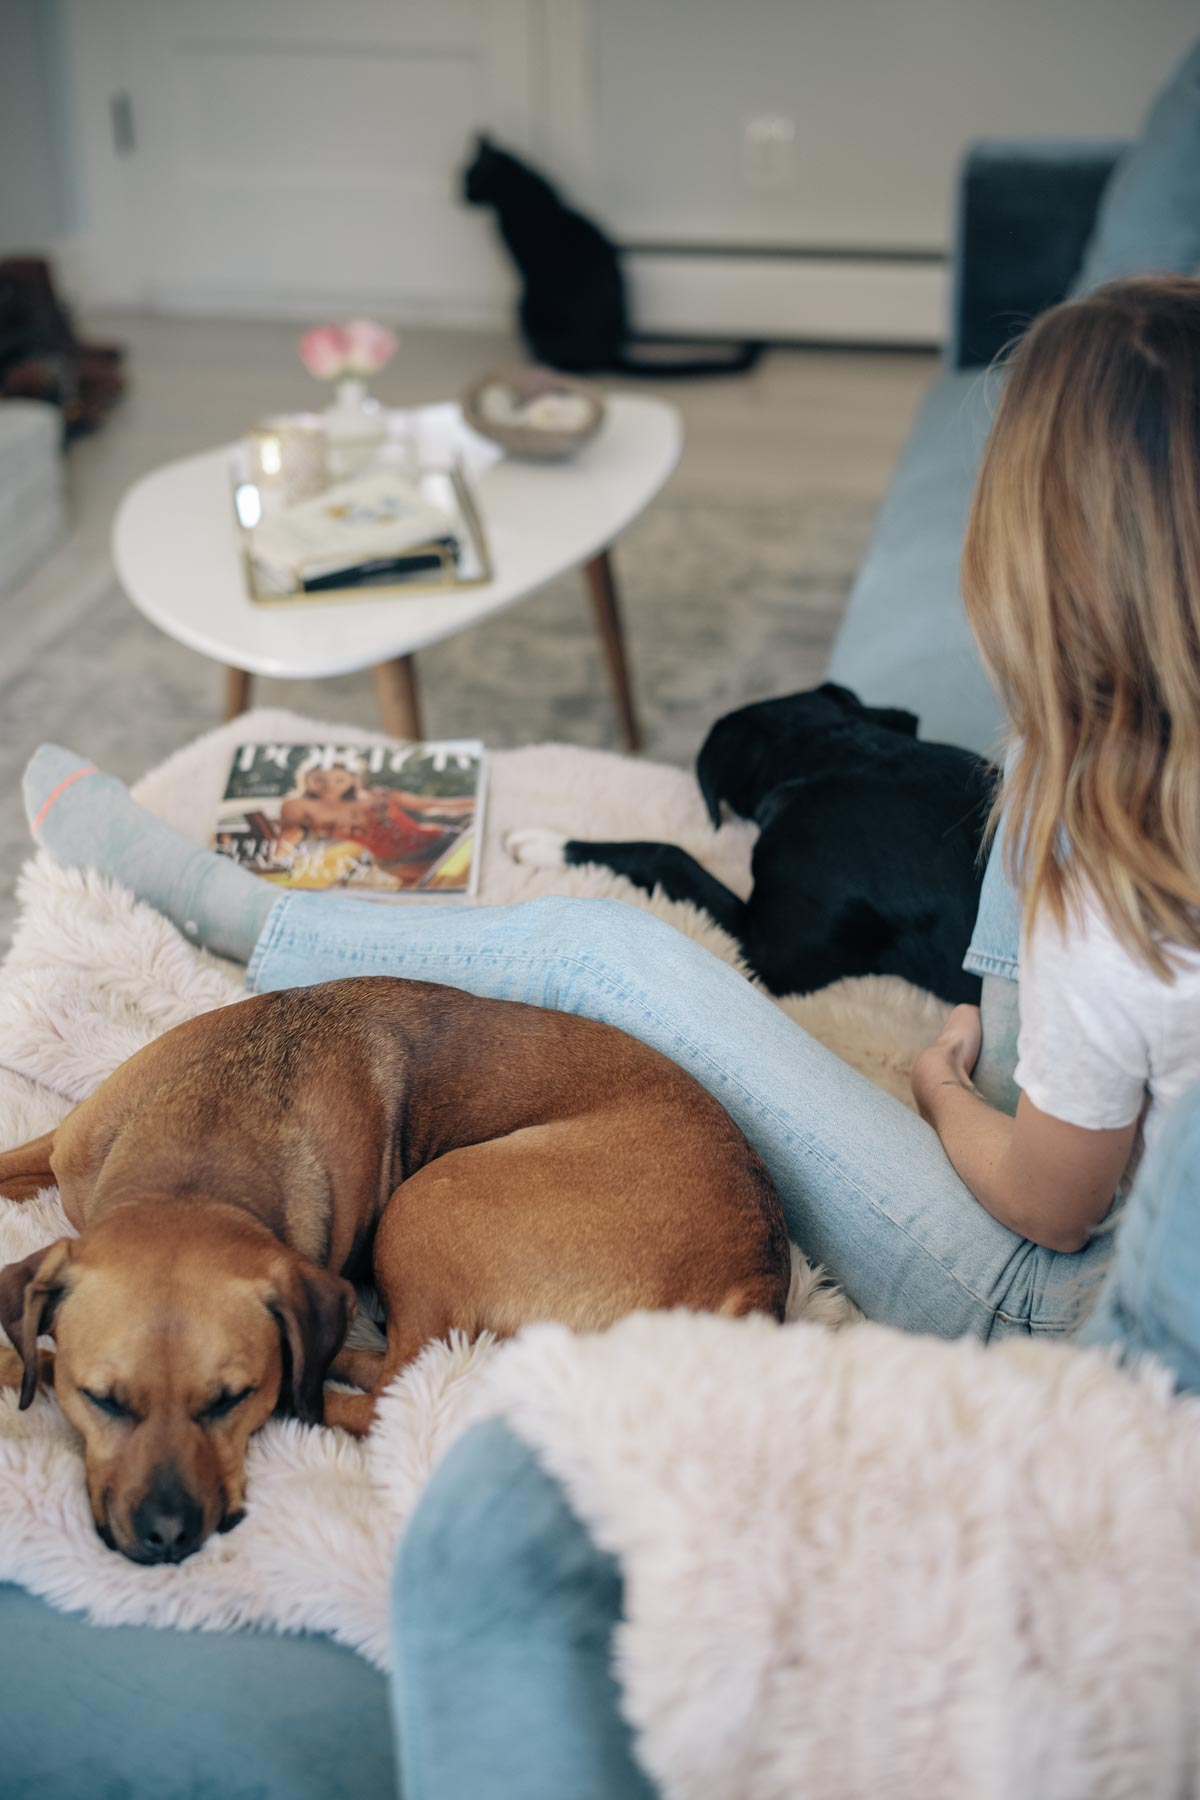 Jess Ann Kirby relaxes on her blue velvet sofa with a blush faux fur throw blanket